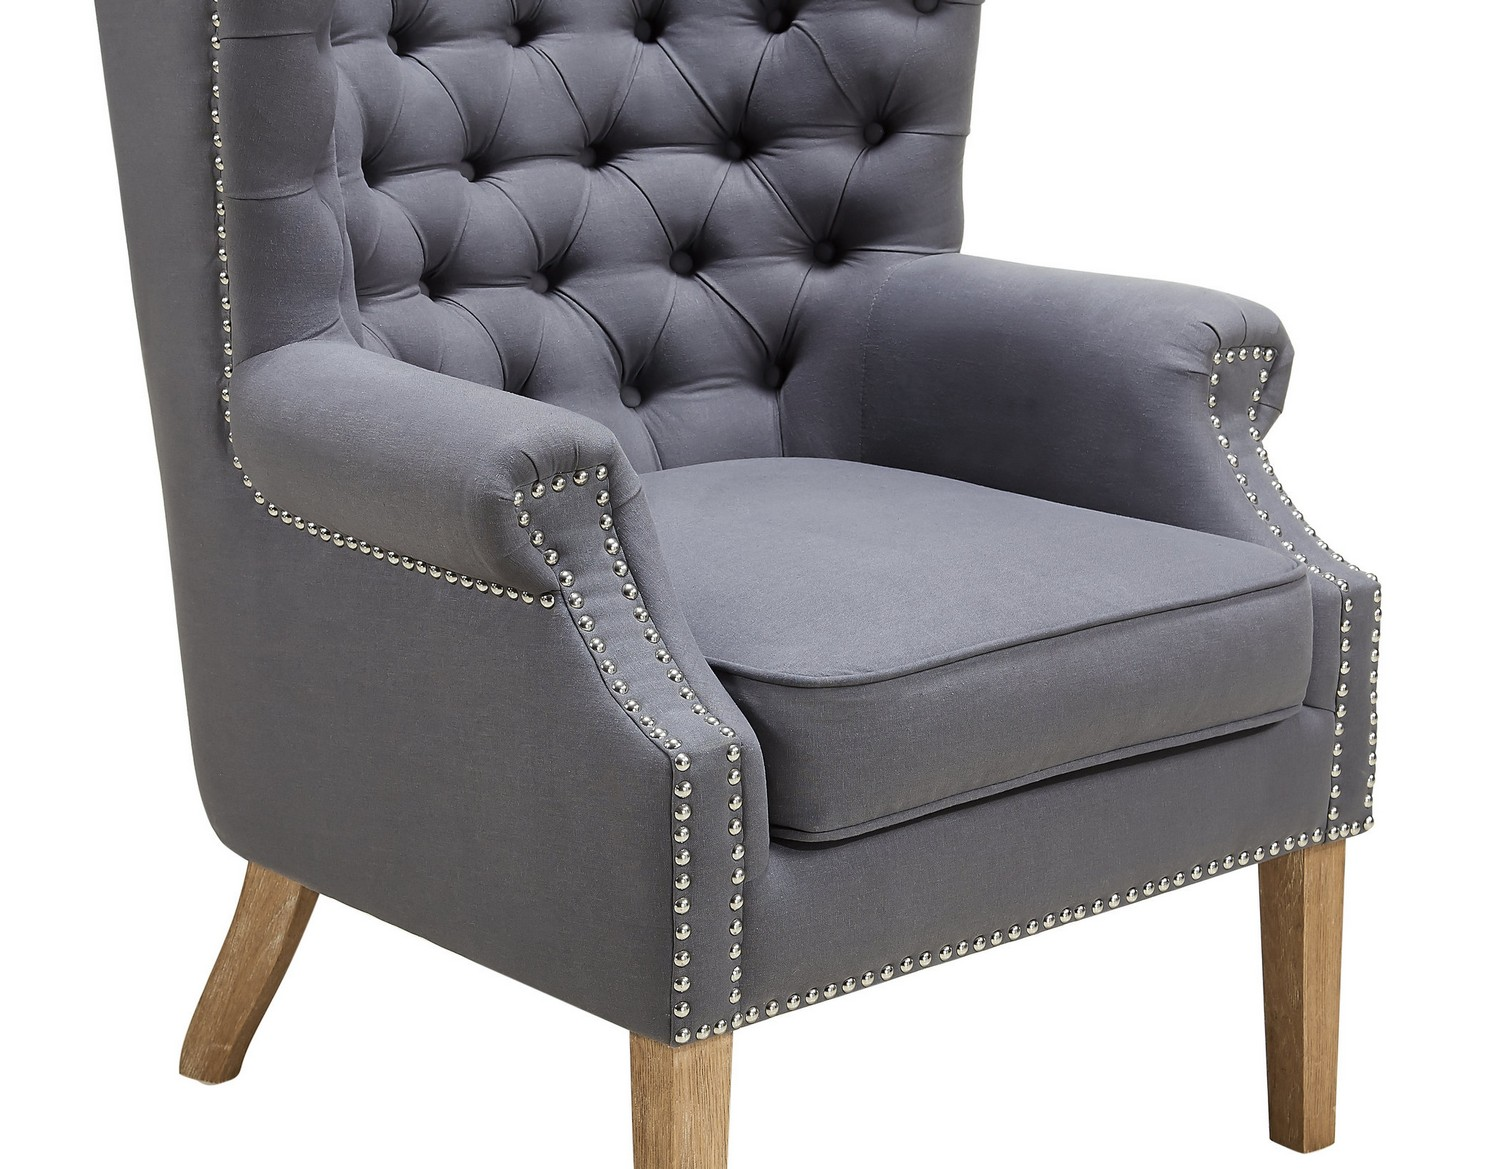 grey wing chair hanging outdoor ikea tov furniture abe linen a2040 at